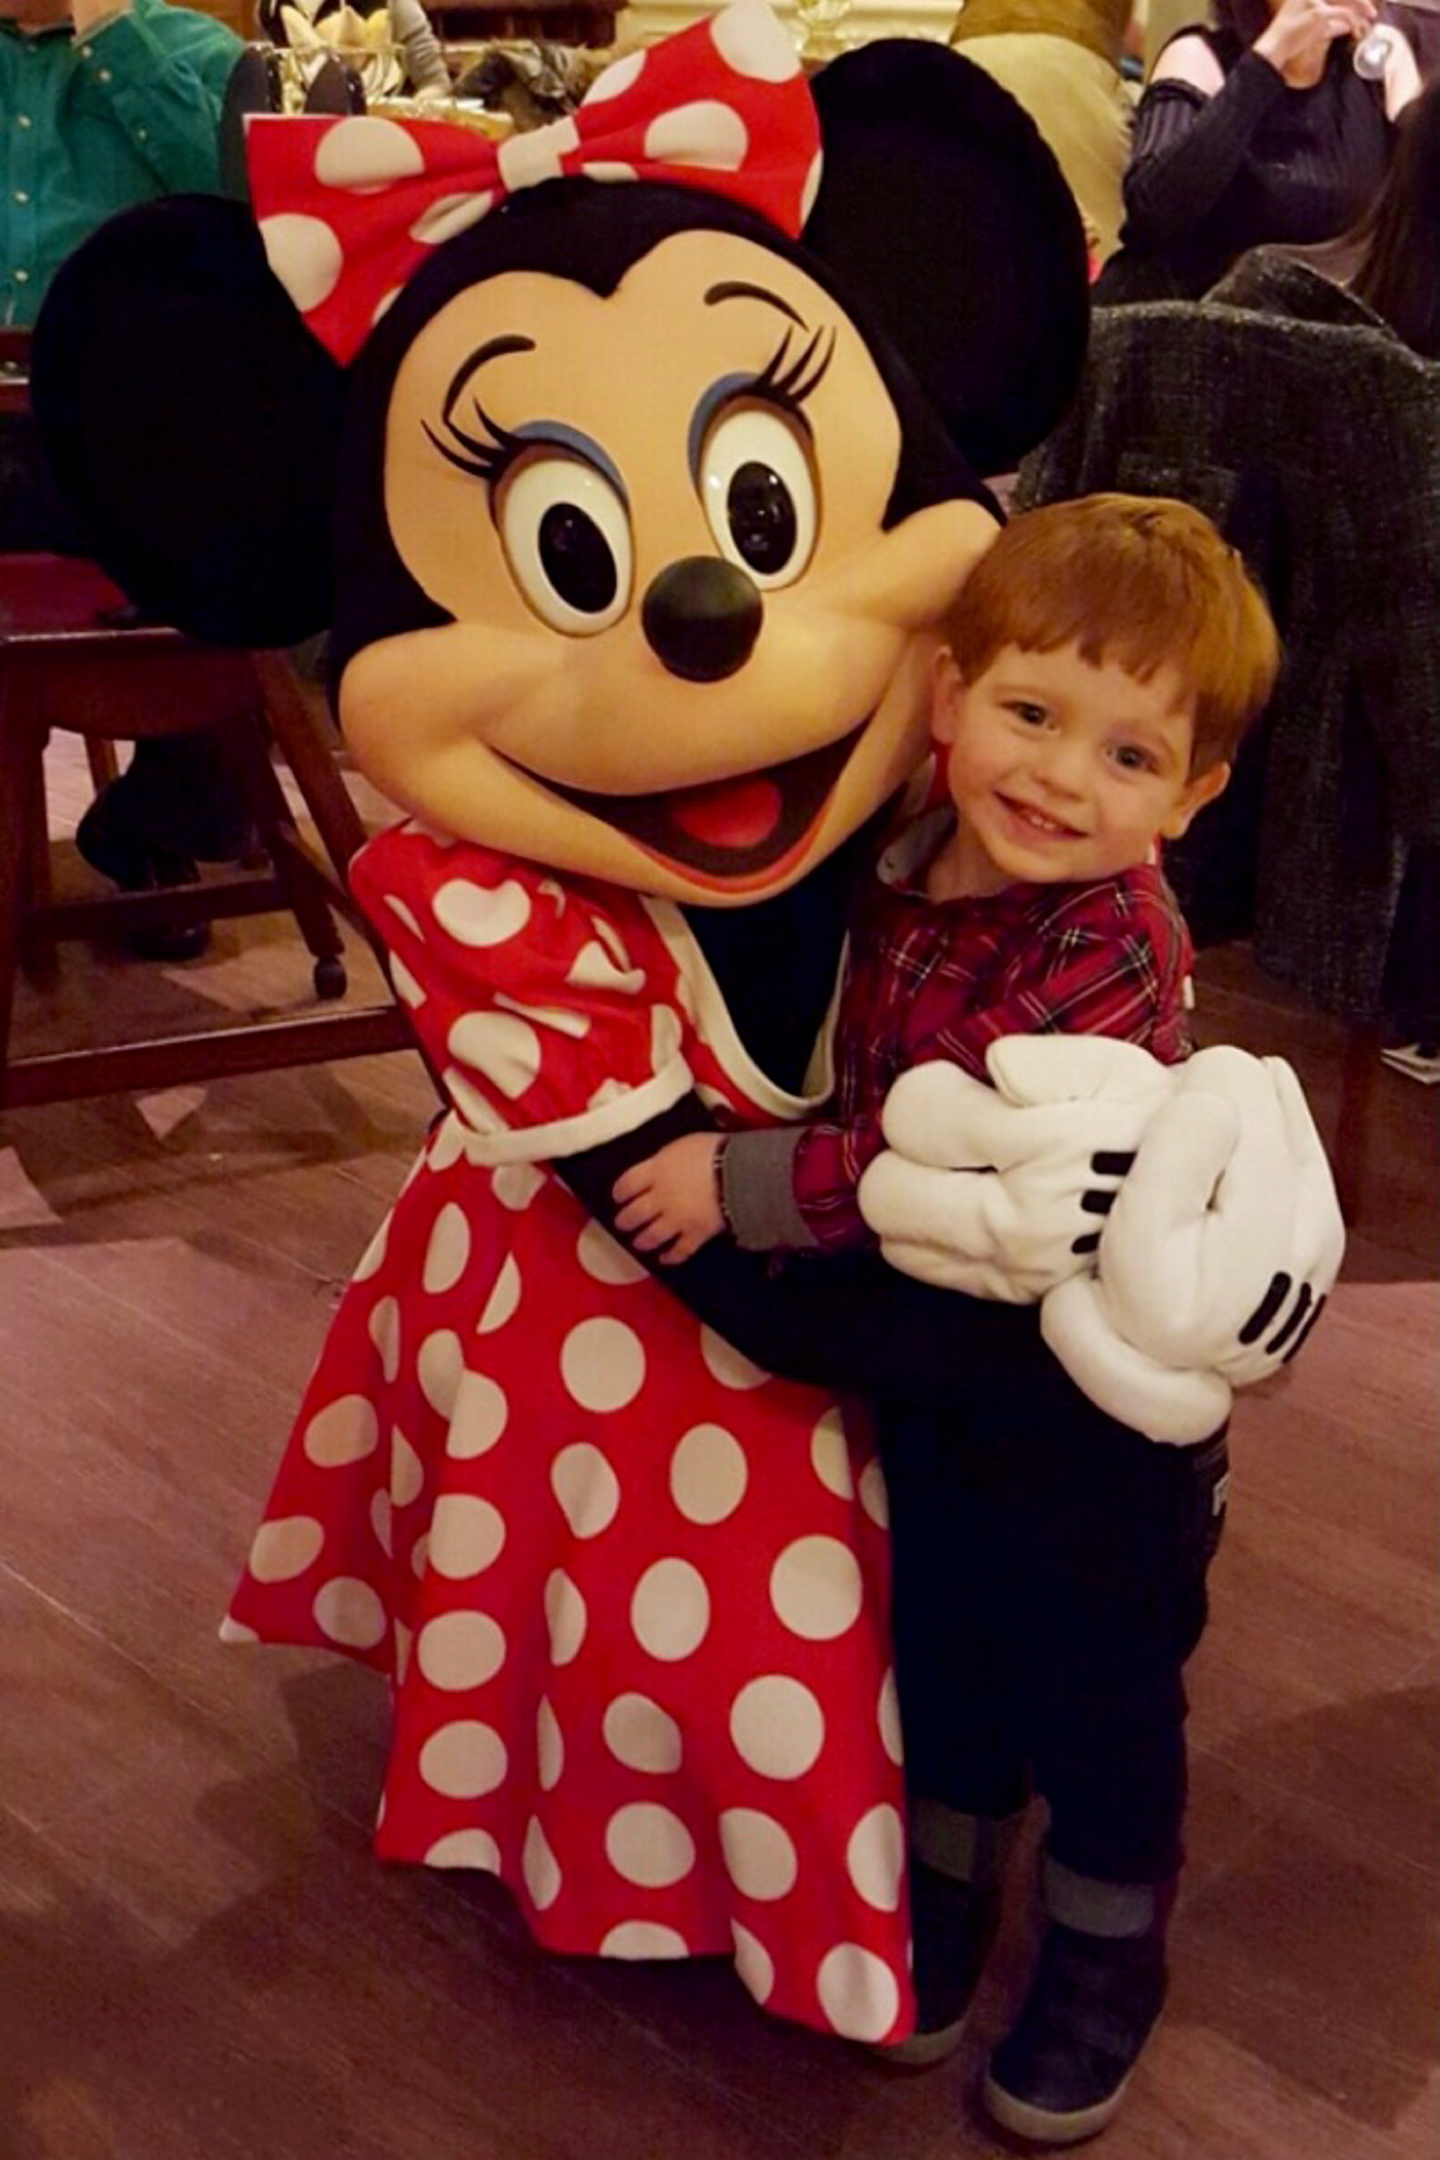 Paula's son William with Minnie Mouse.